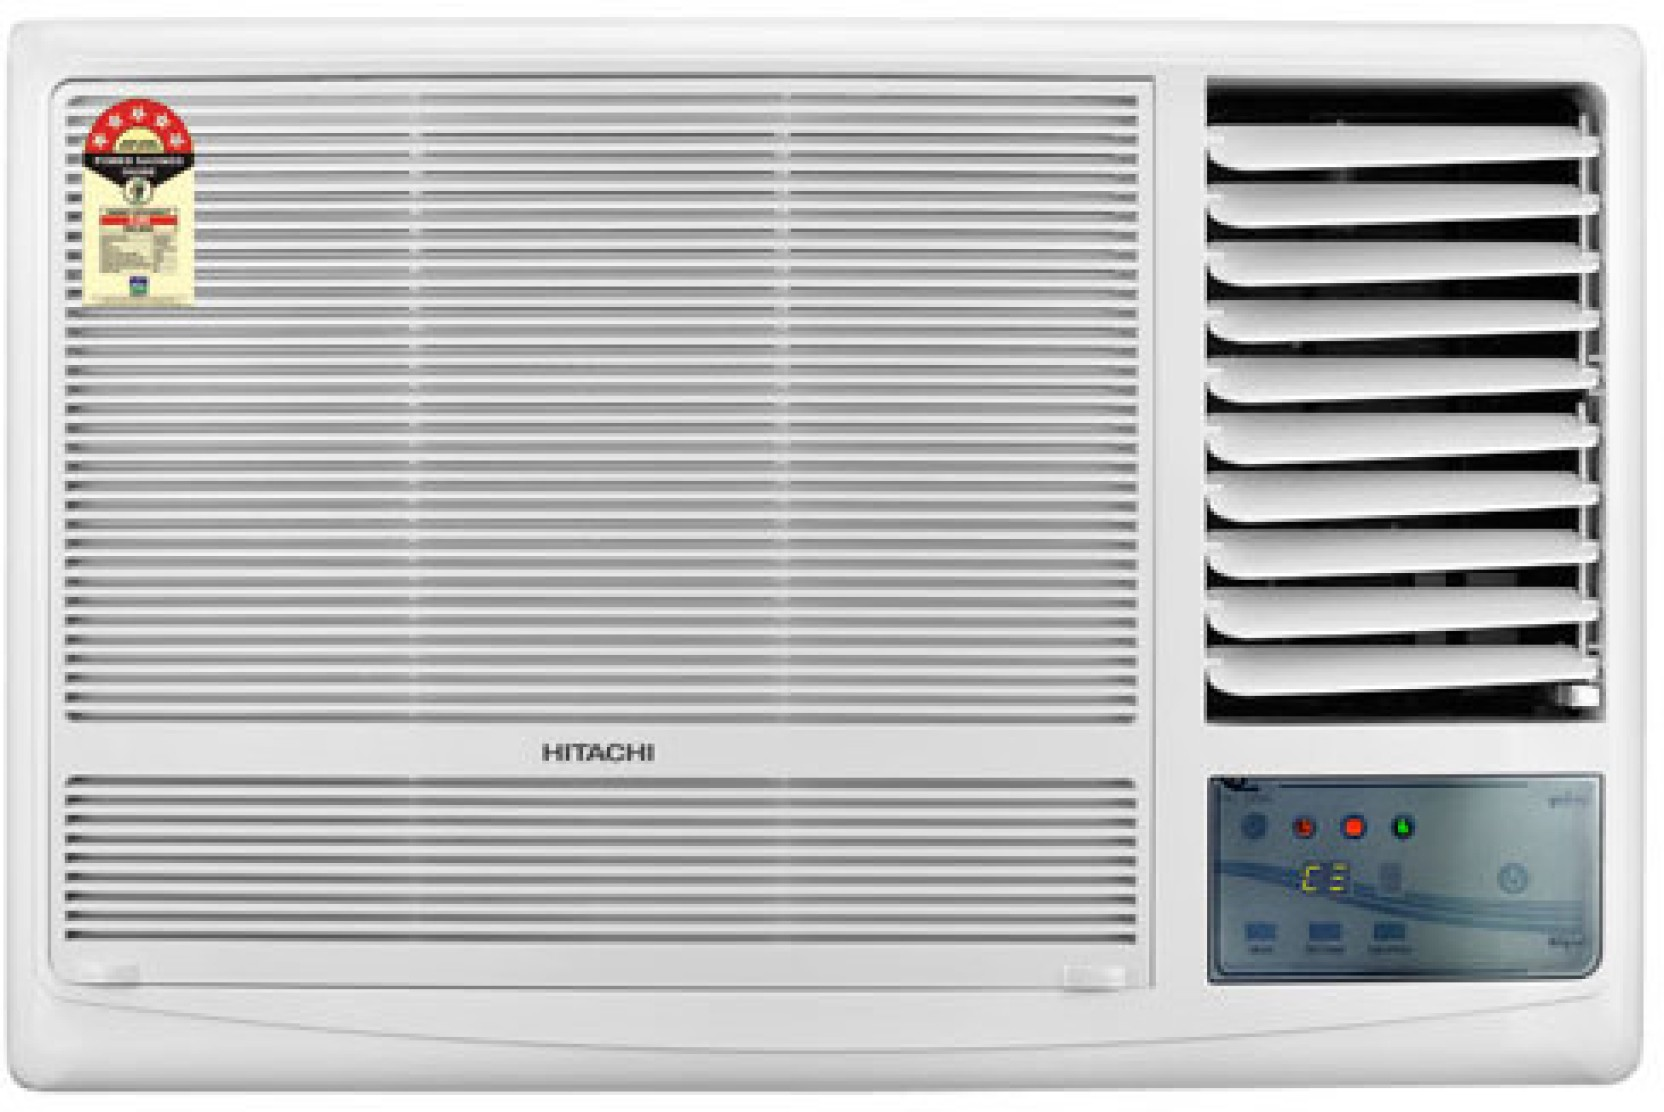 Buy hitachi 1 ton 5 star window ac white for 1 ton window ac price list 2013